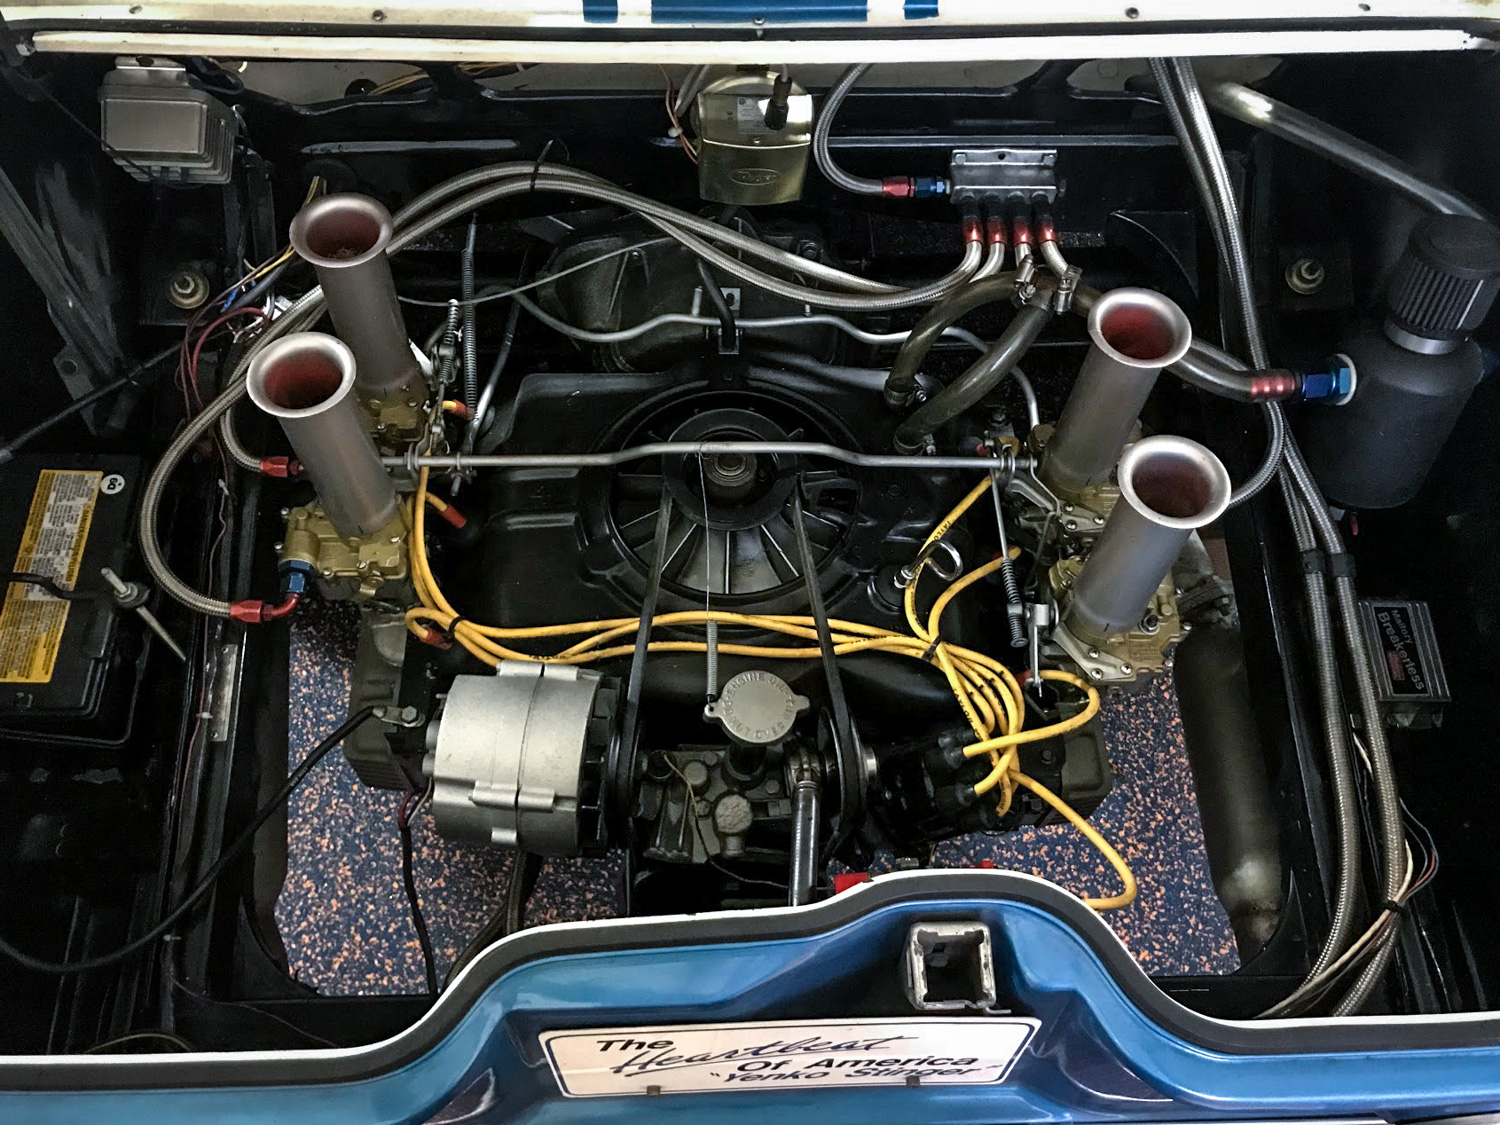 The Yenko tuned engine features special carburetors, camshaft and exhaust.